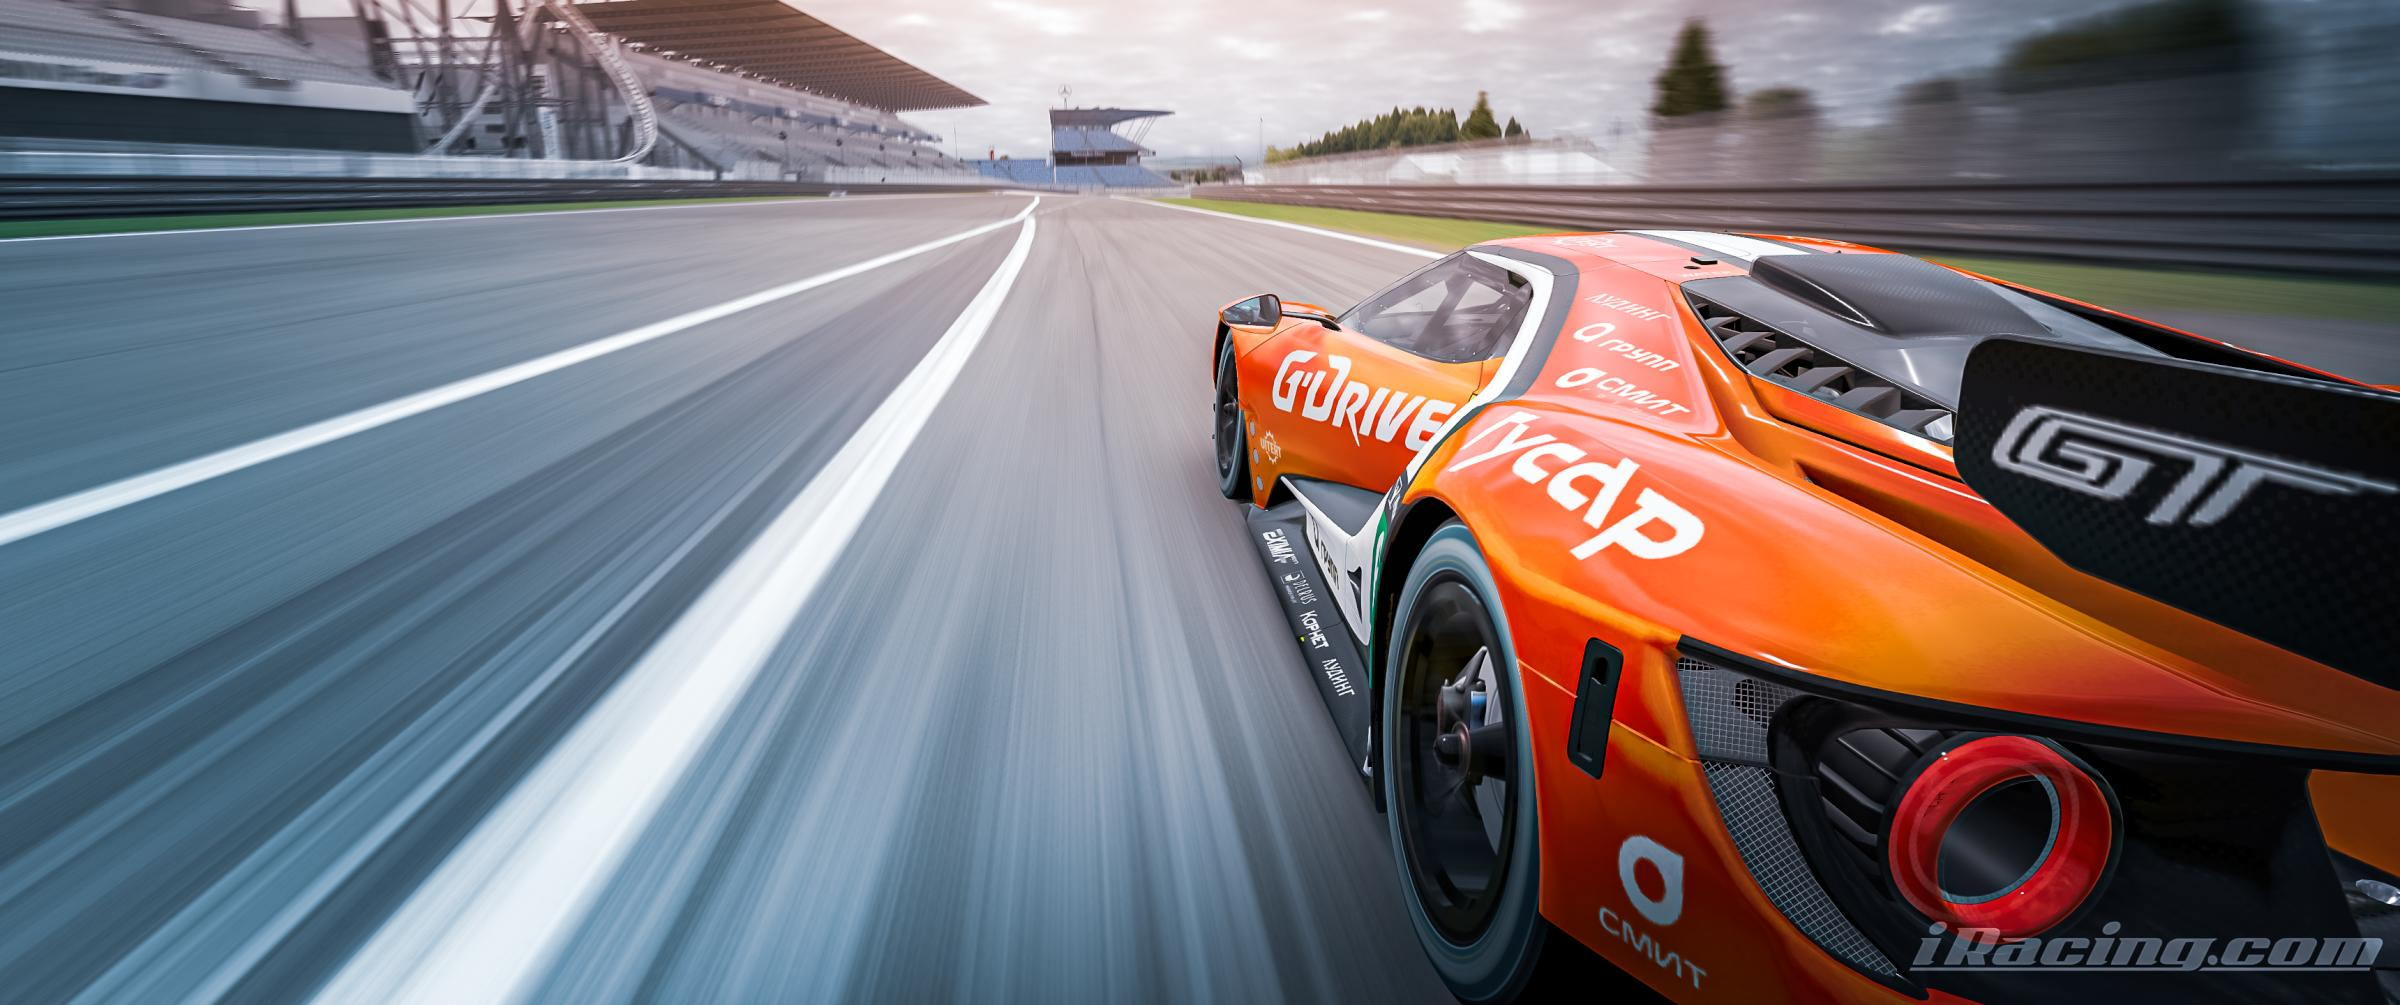 Preview of G-Drive Racing Eximia  by Roman Rusinov